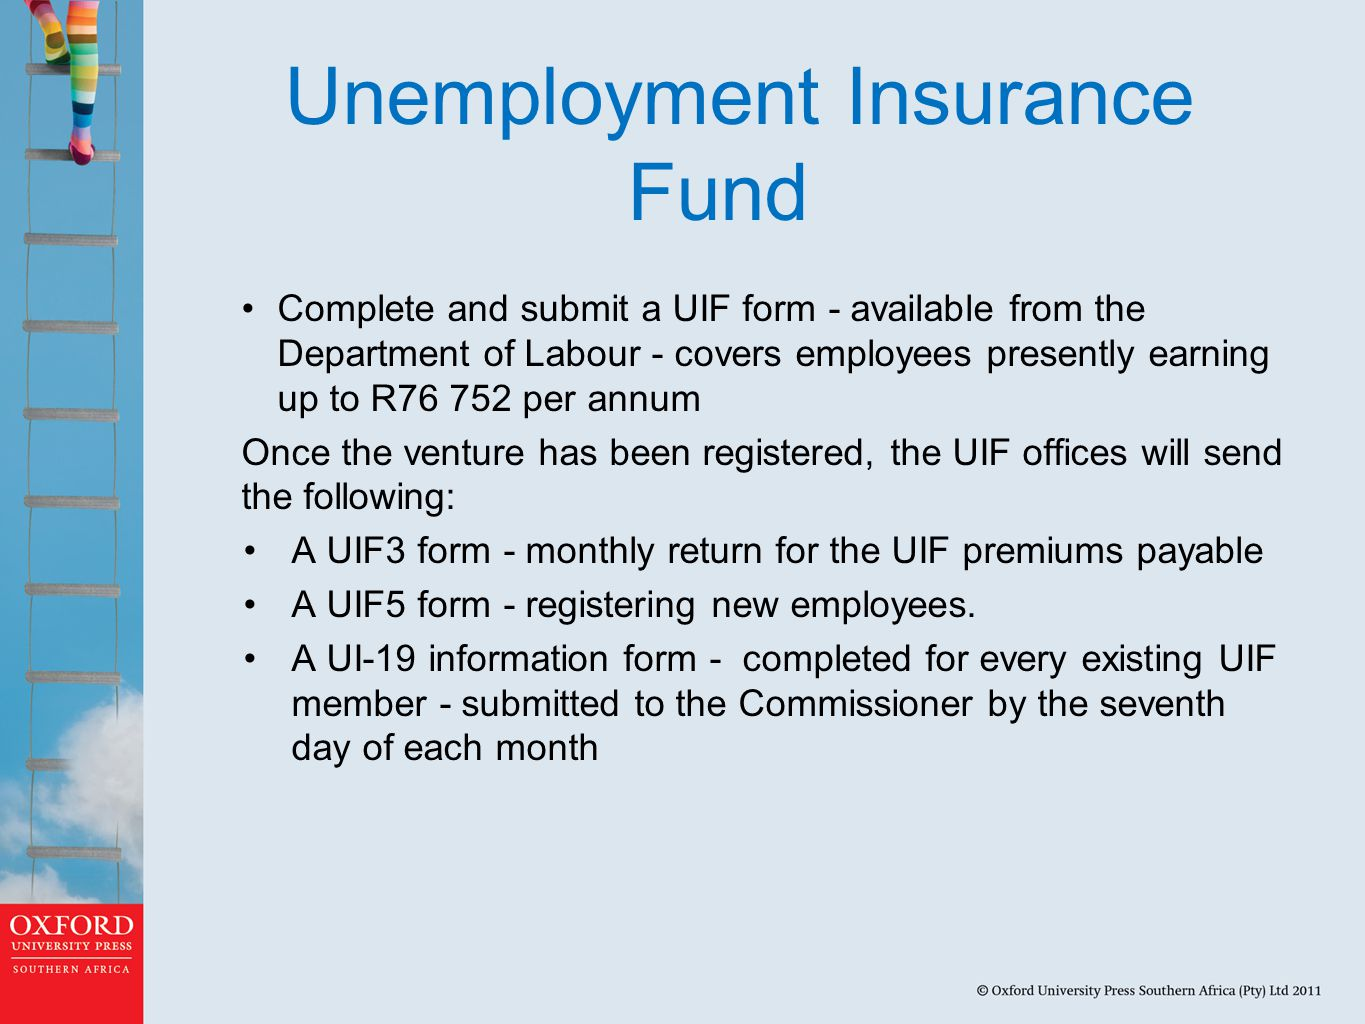 Unemployment Insurance Fund Complete and submit a UIF form - available from the Department of Labour - covers employees presently earning up to R76 752 per annum Once the venture has been registered, the UIF offices will send the following: A UIF3 form - monthly return for the UIF premiums payable A UIF5 form - registering new employees.